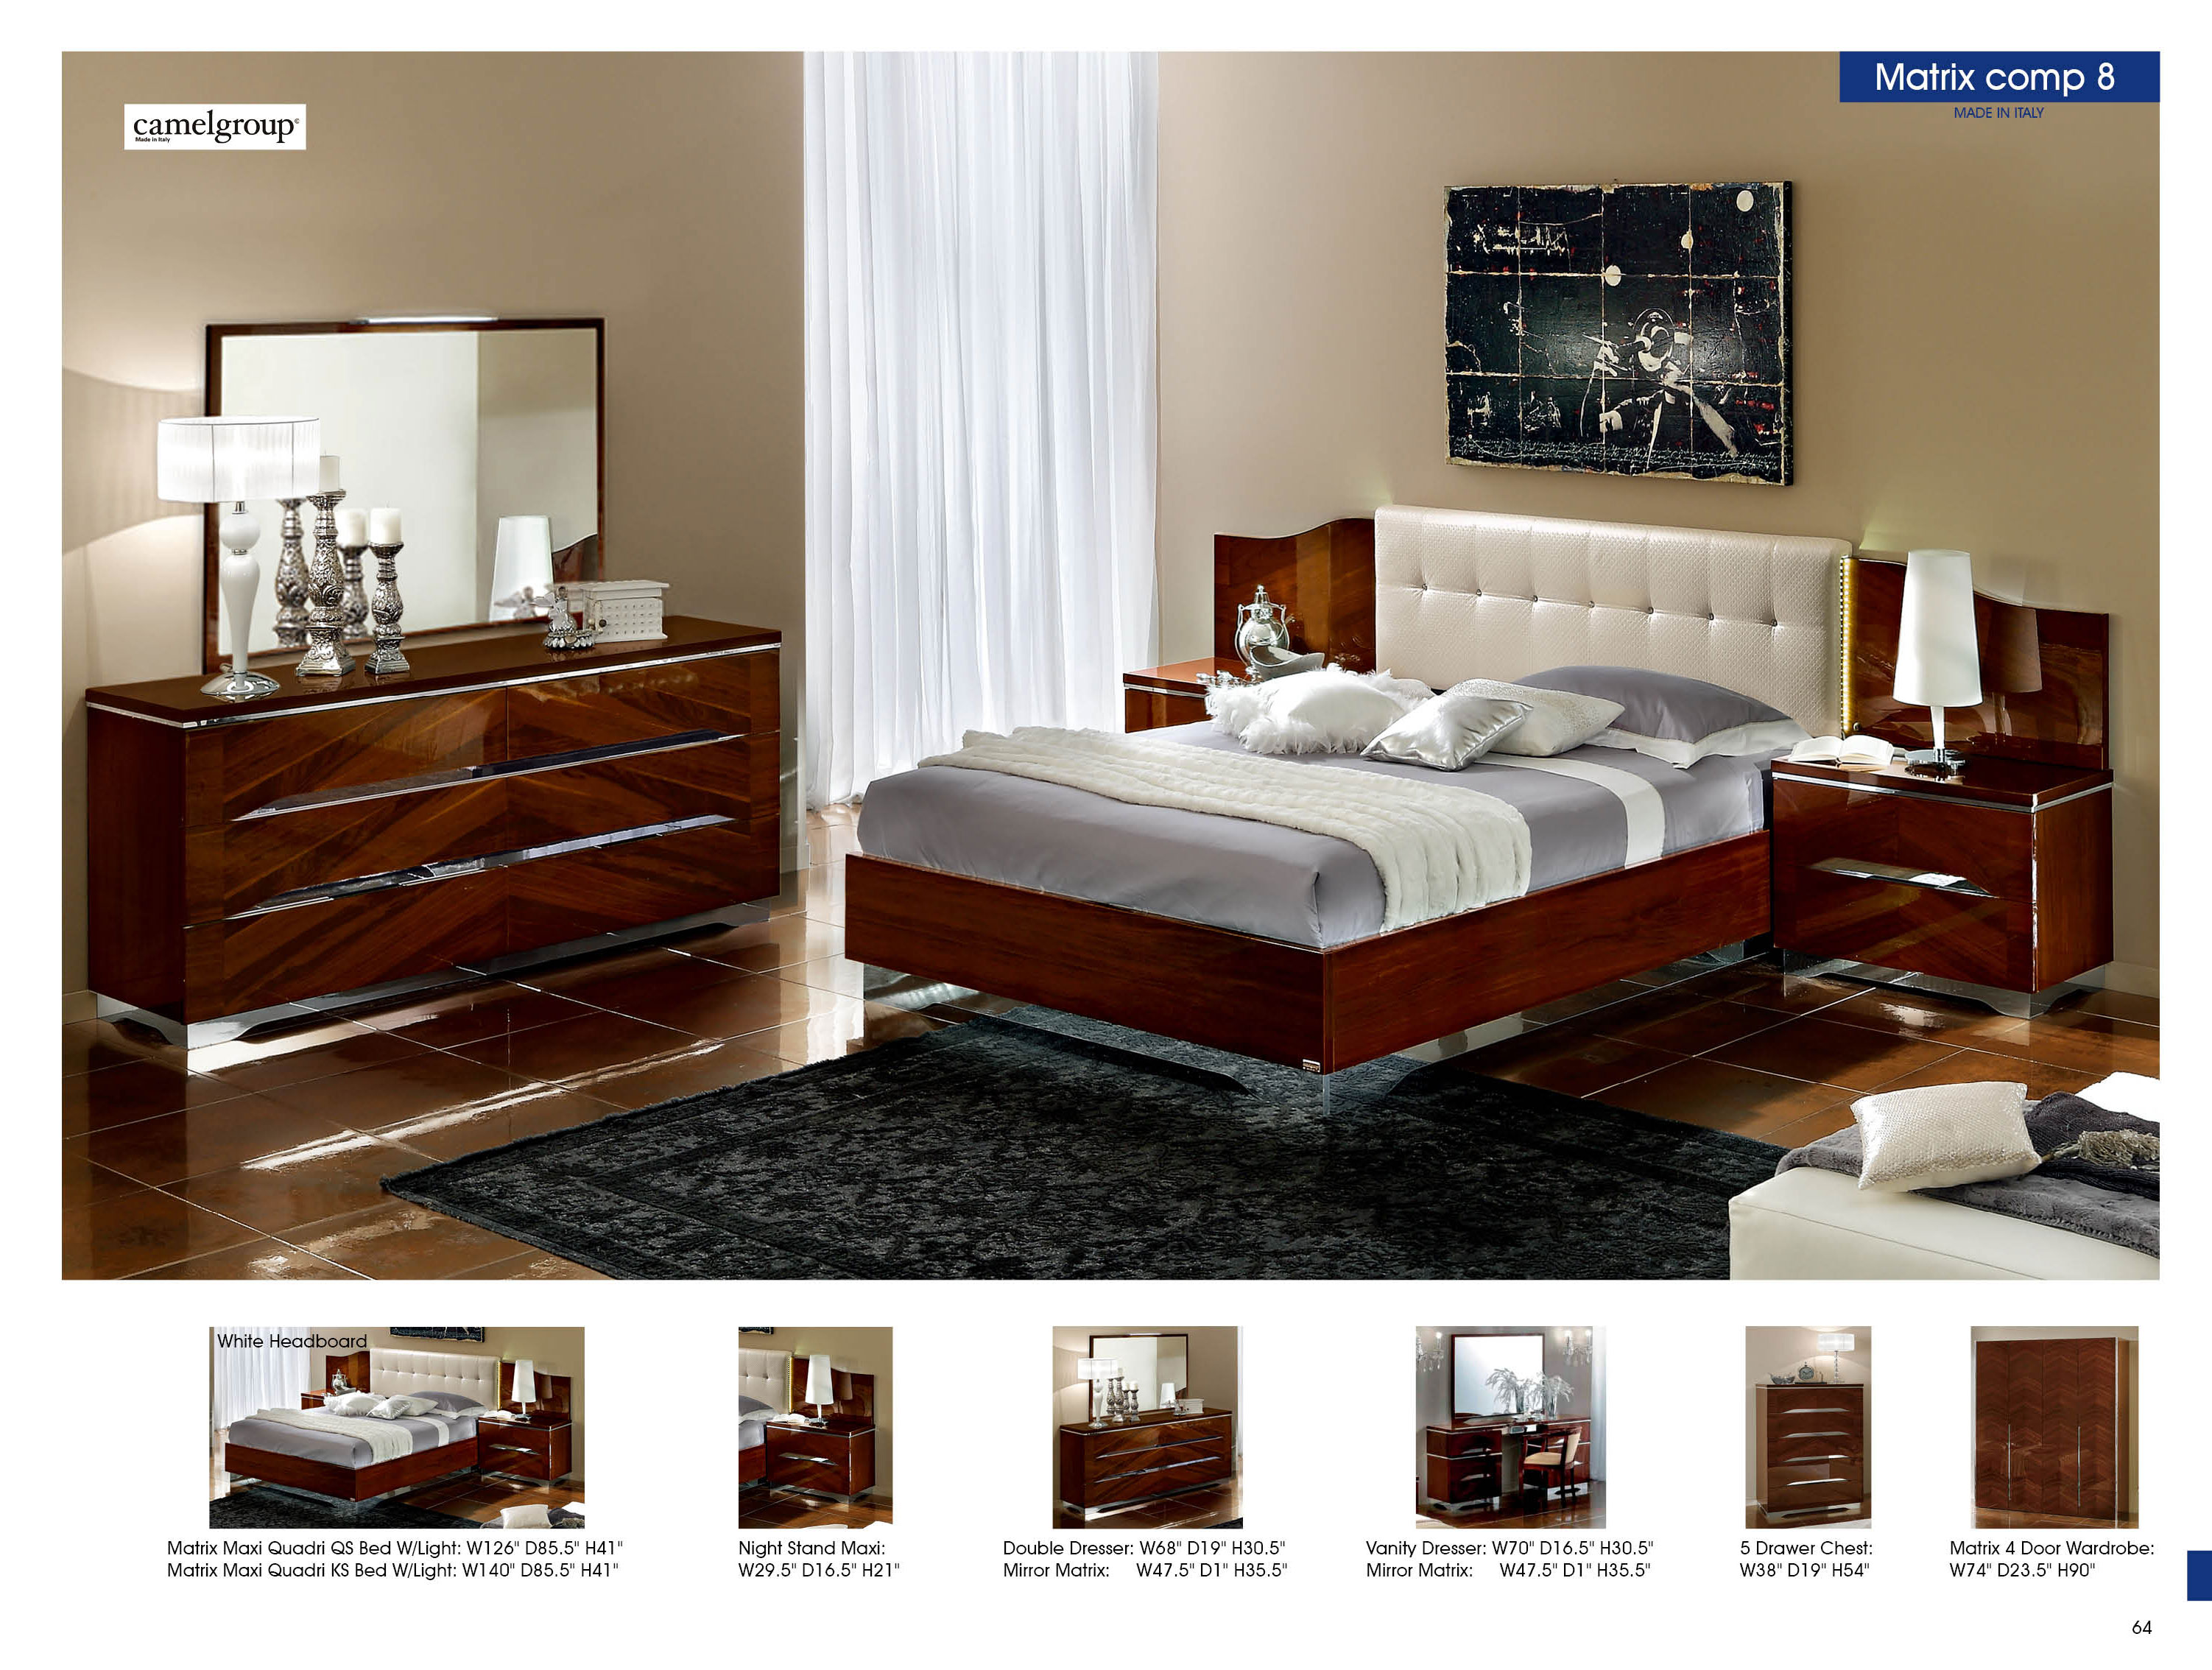 White Headboard Camelgroup Italy Modern Bedrooms Bedroom Furniture. home ...